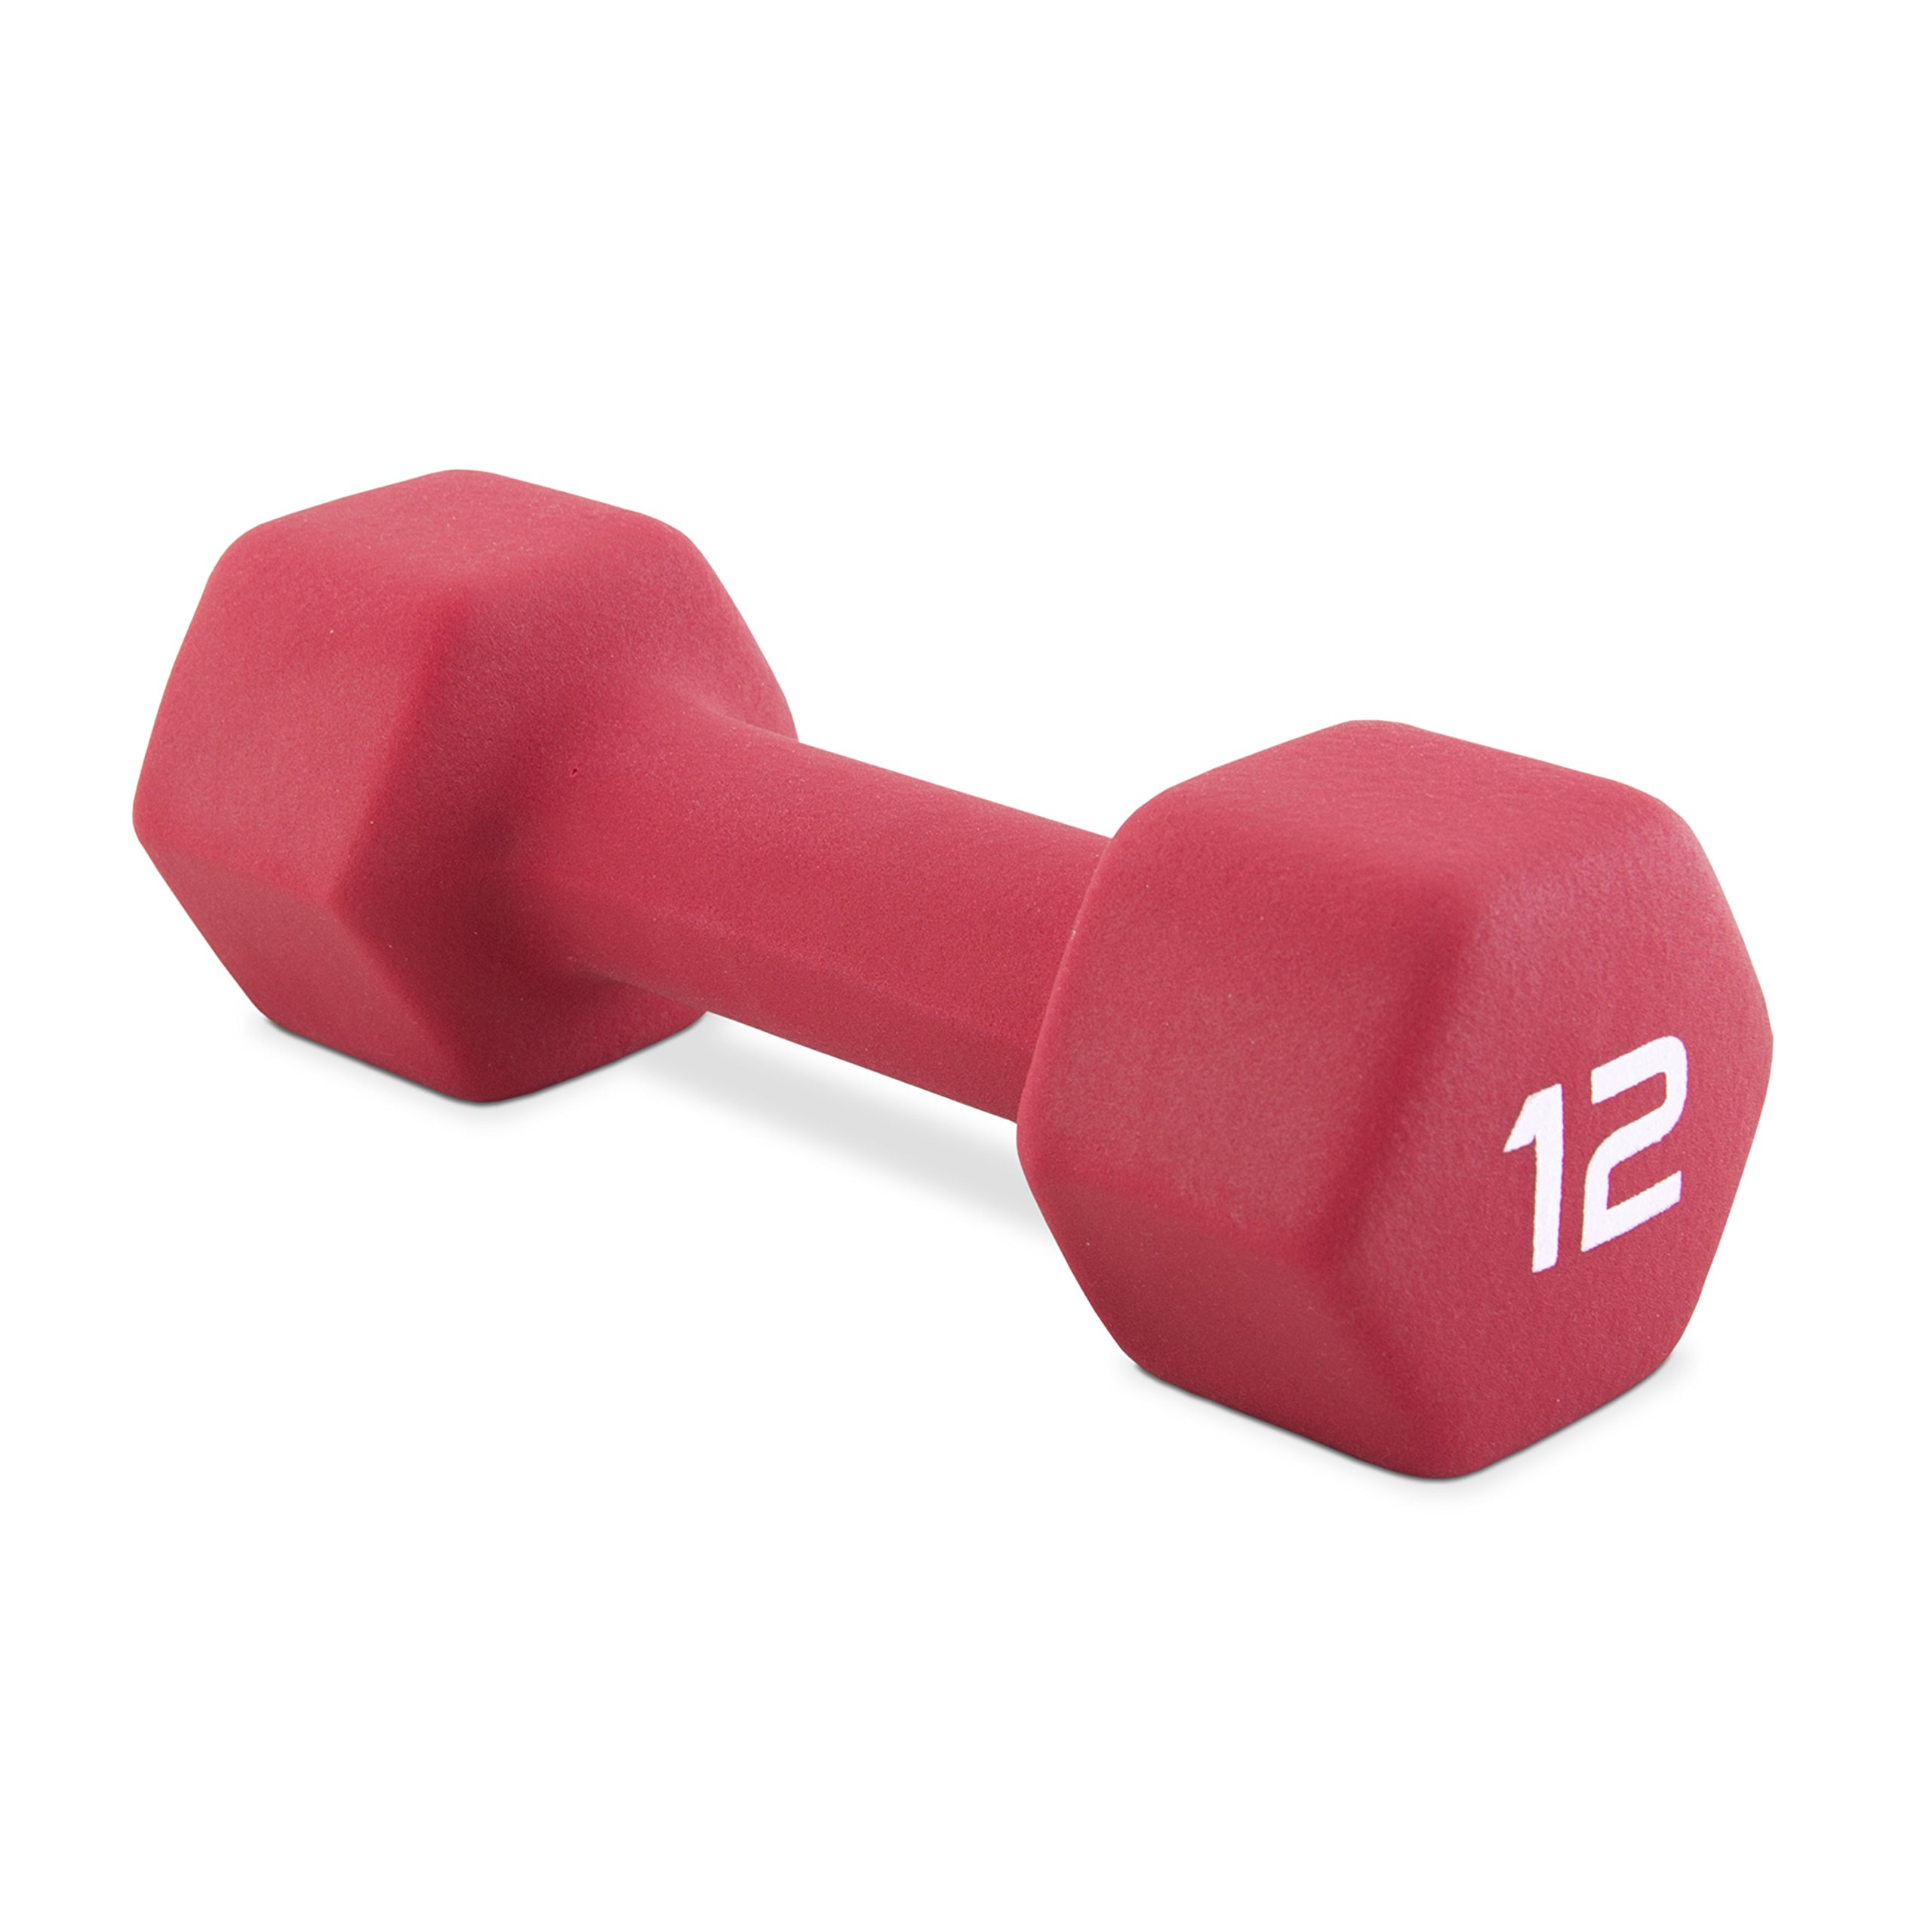 CAP Barbell SDN5-012 Neoprene Coated Dumbbell, Single, 12 lb by CAP Barbell